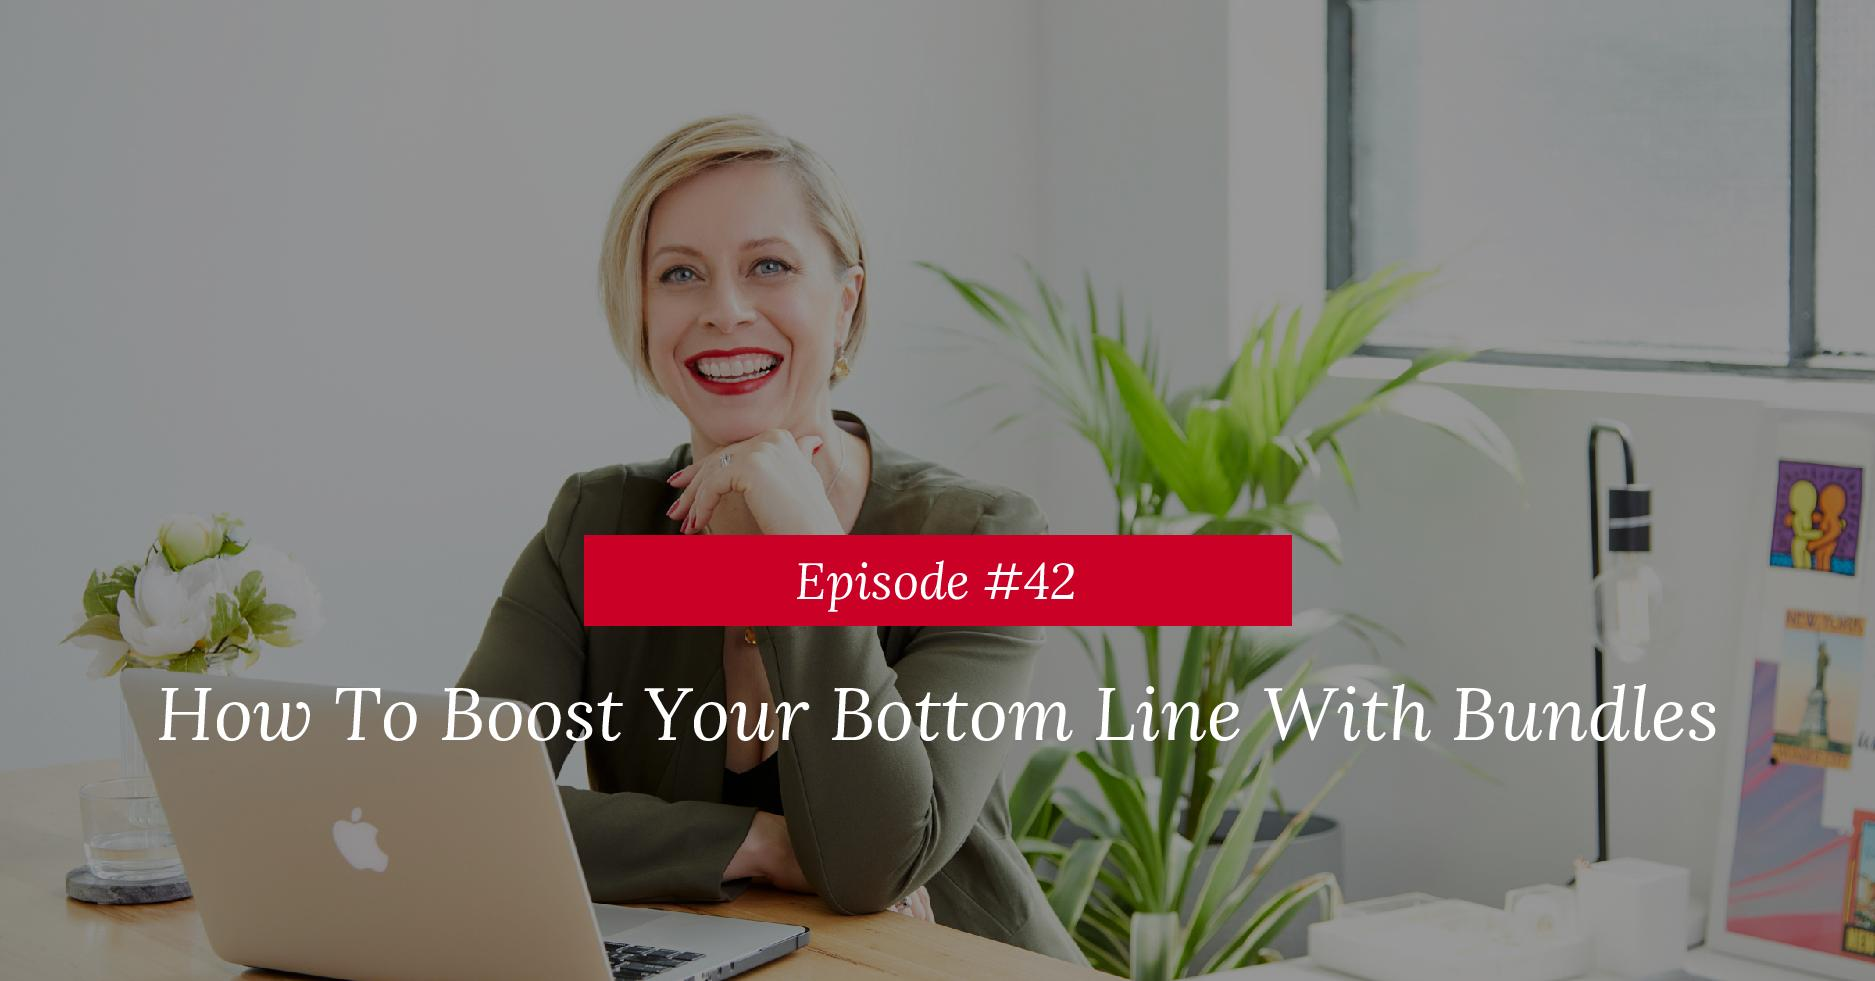 How To Boost Your Bottom Line With Bundles